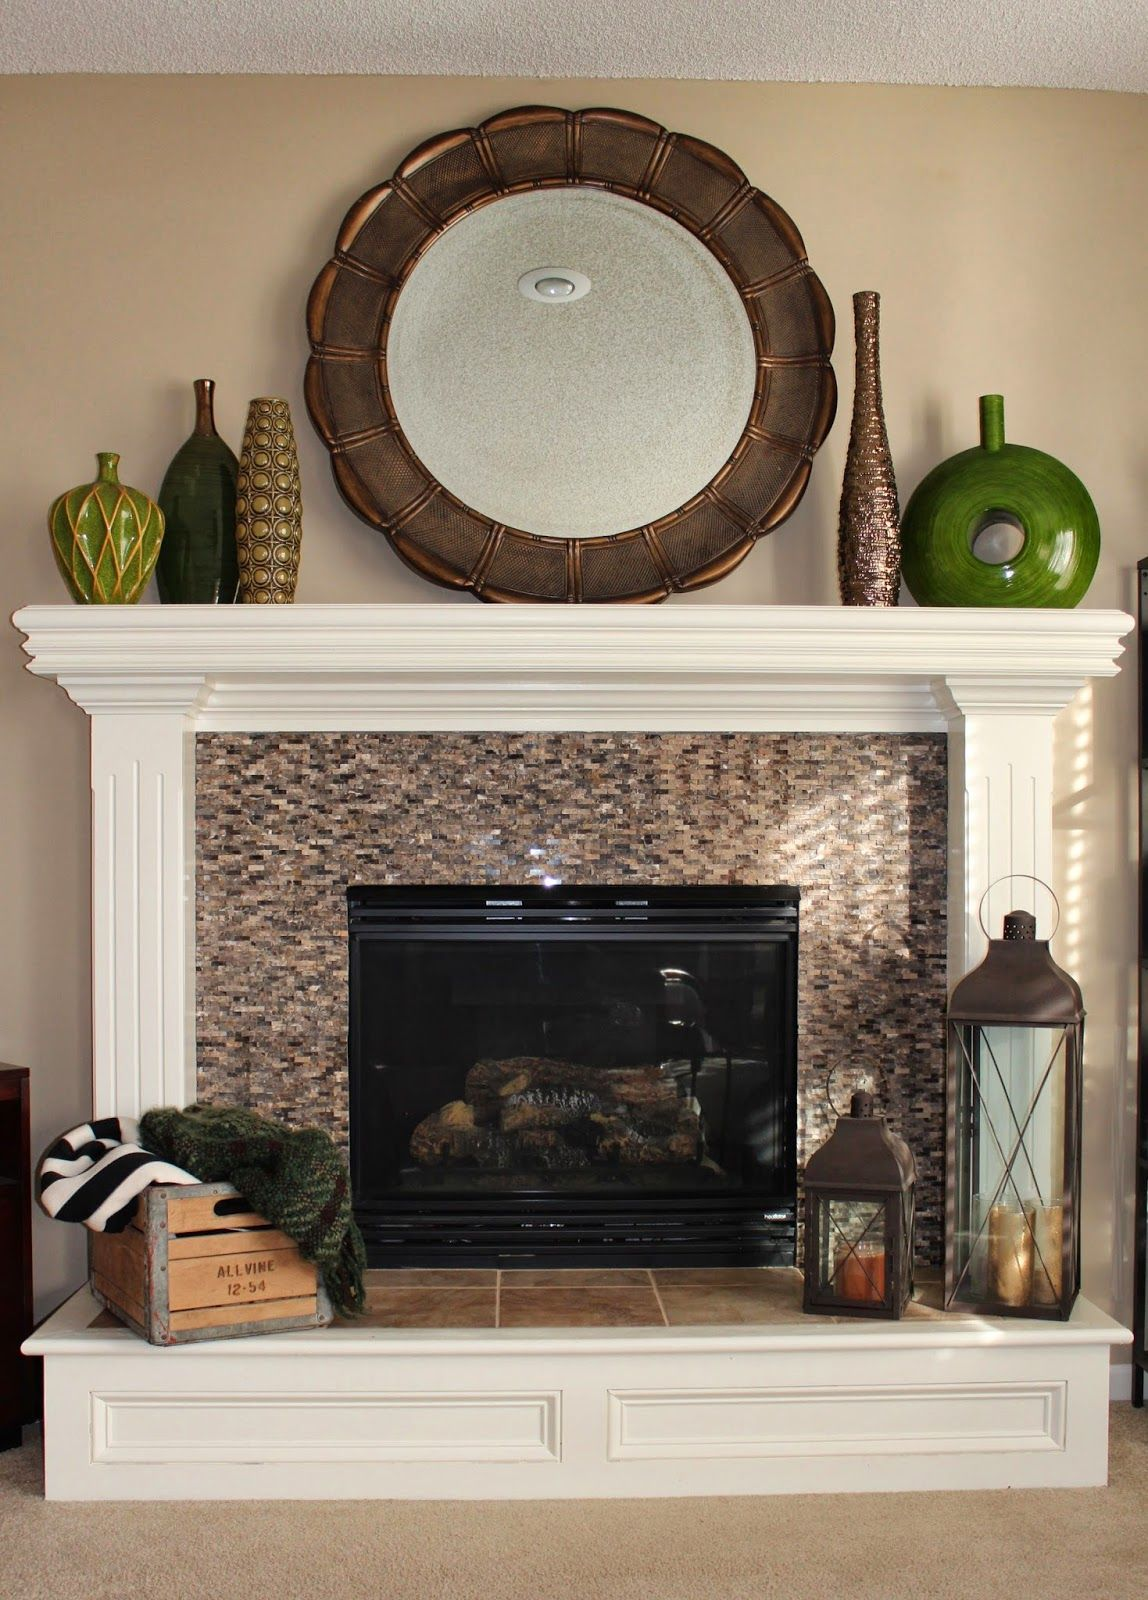 Mantle Without Fireplace Similar Fireplace Before Look As Mine Without Pedestal Ideas T